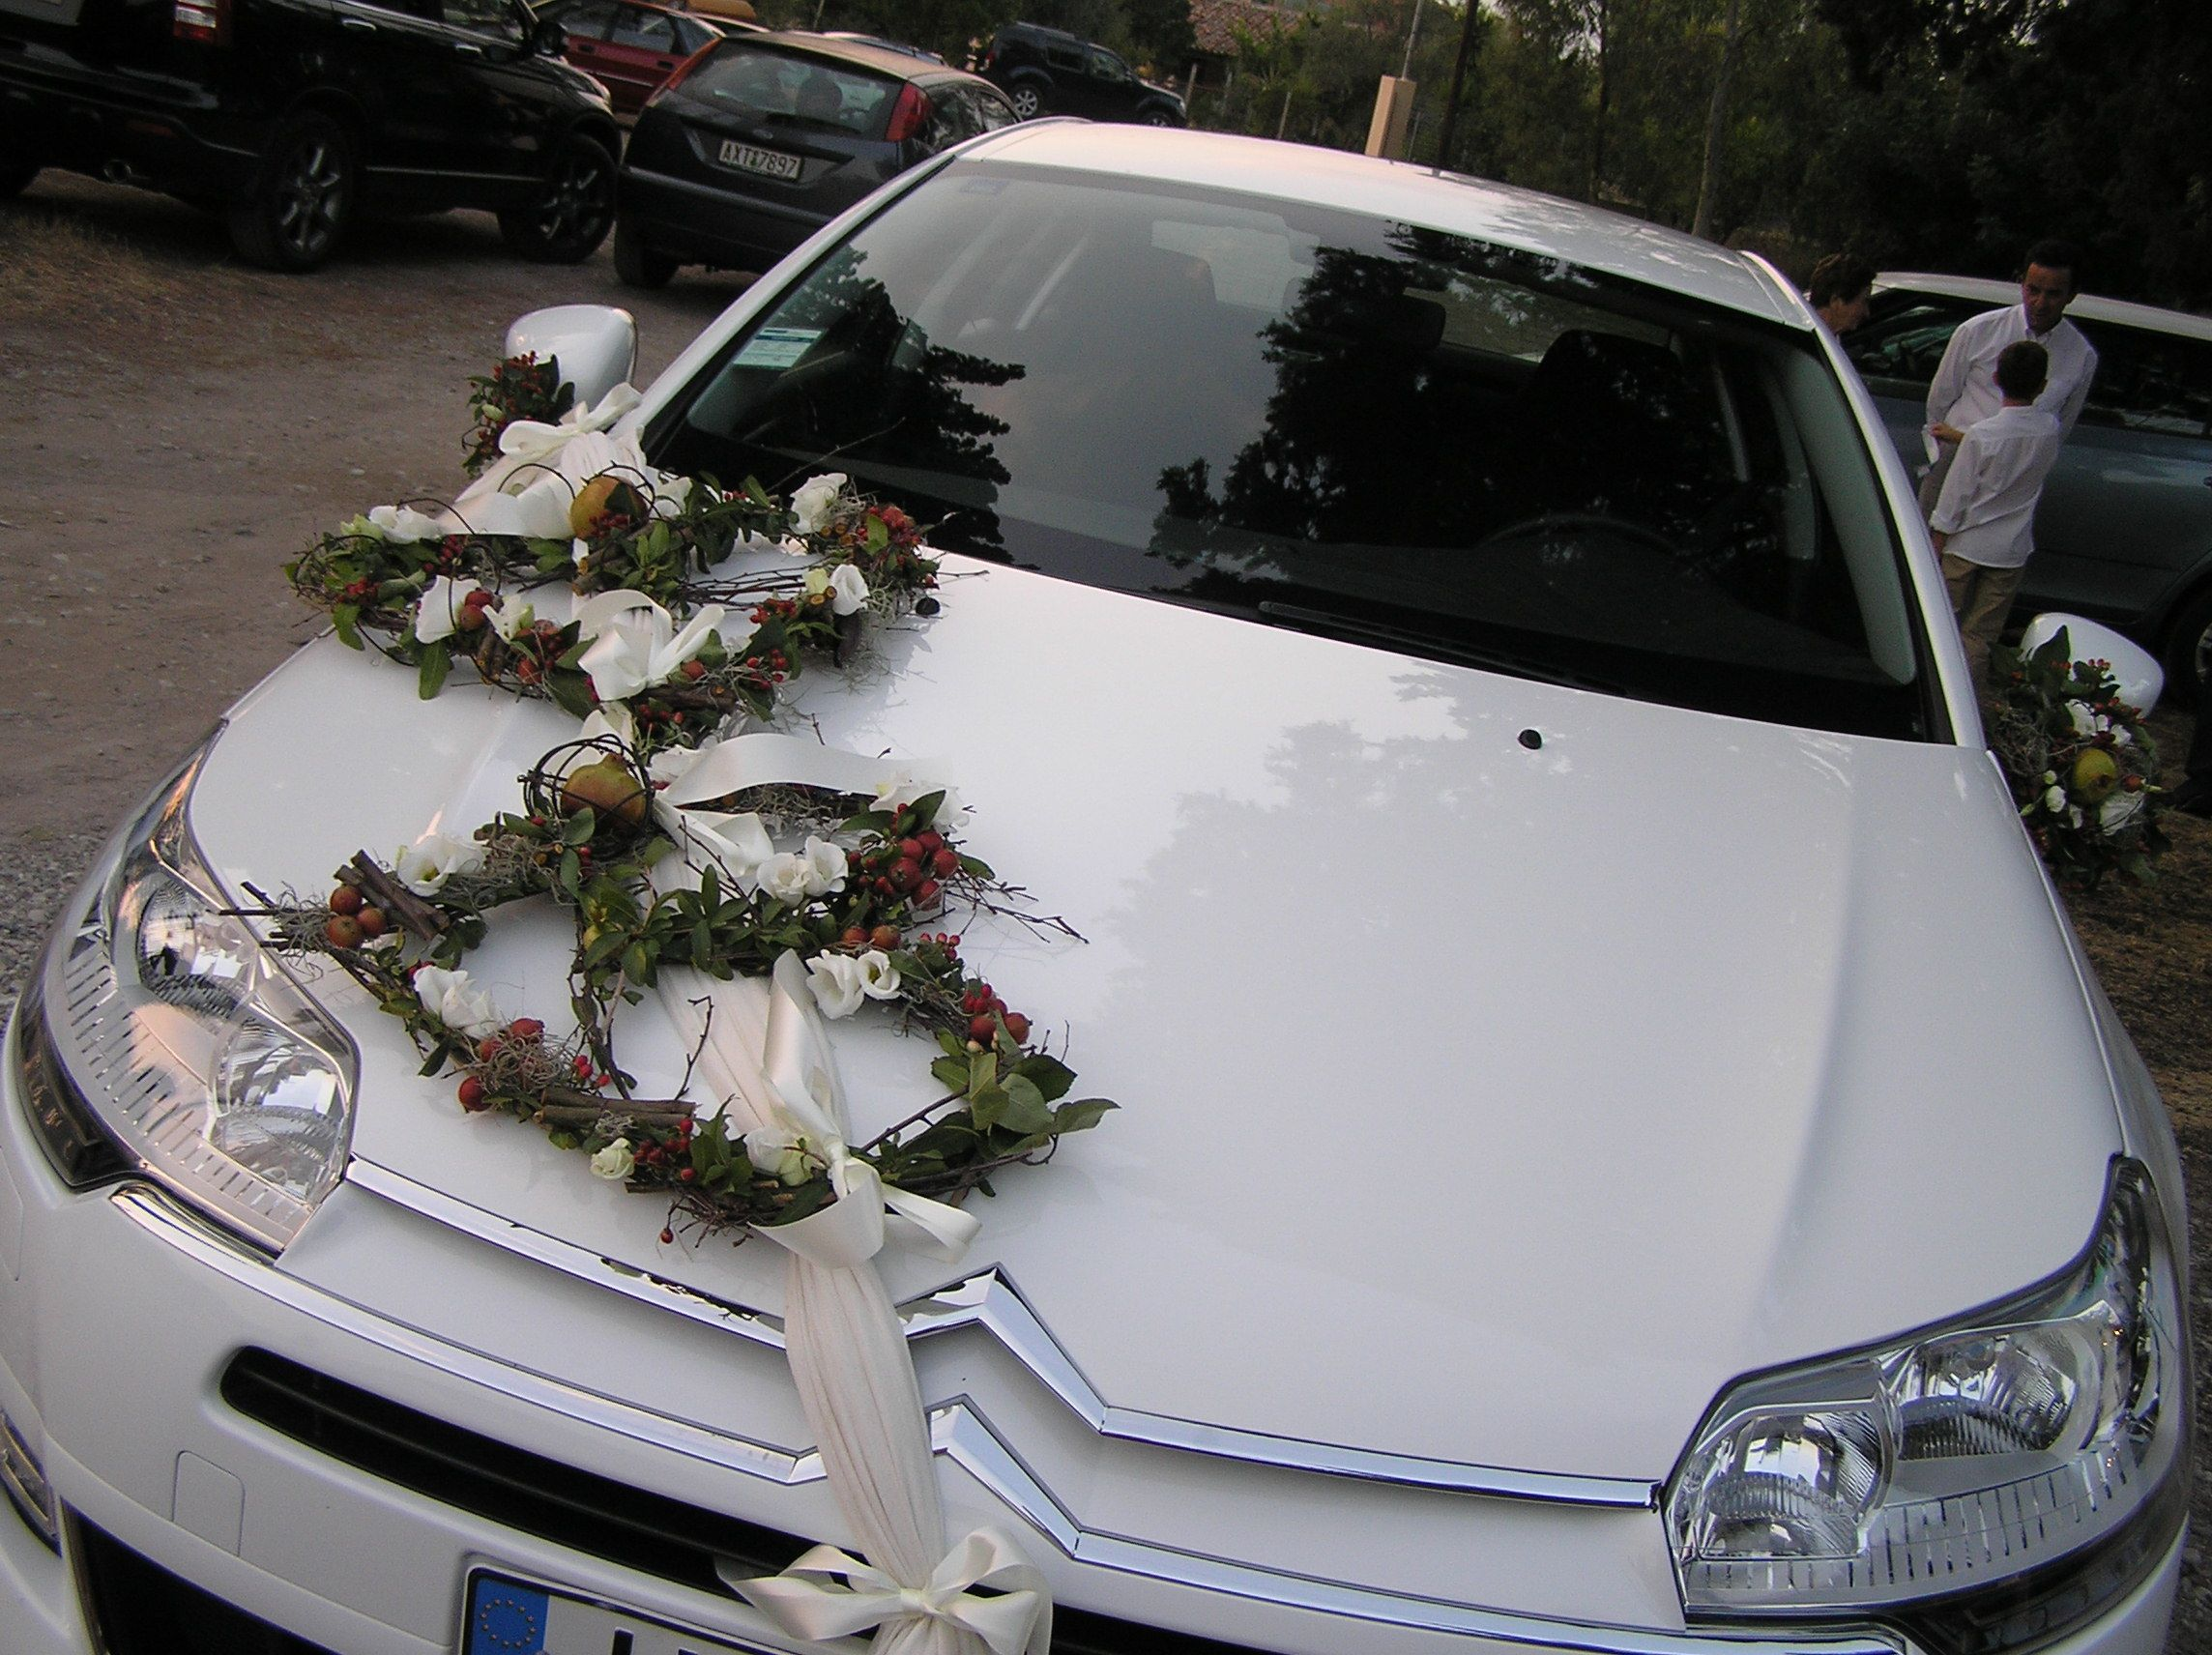 Wedding decorations for car  Wedding car decorations  Wedding ideas  Pinterest  Wedding car